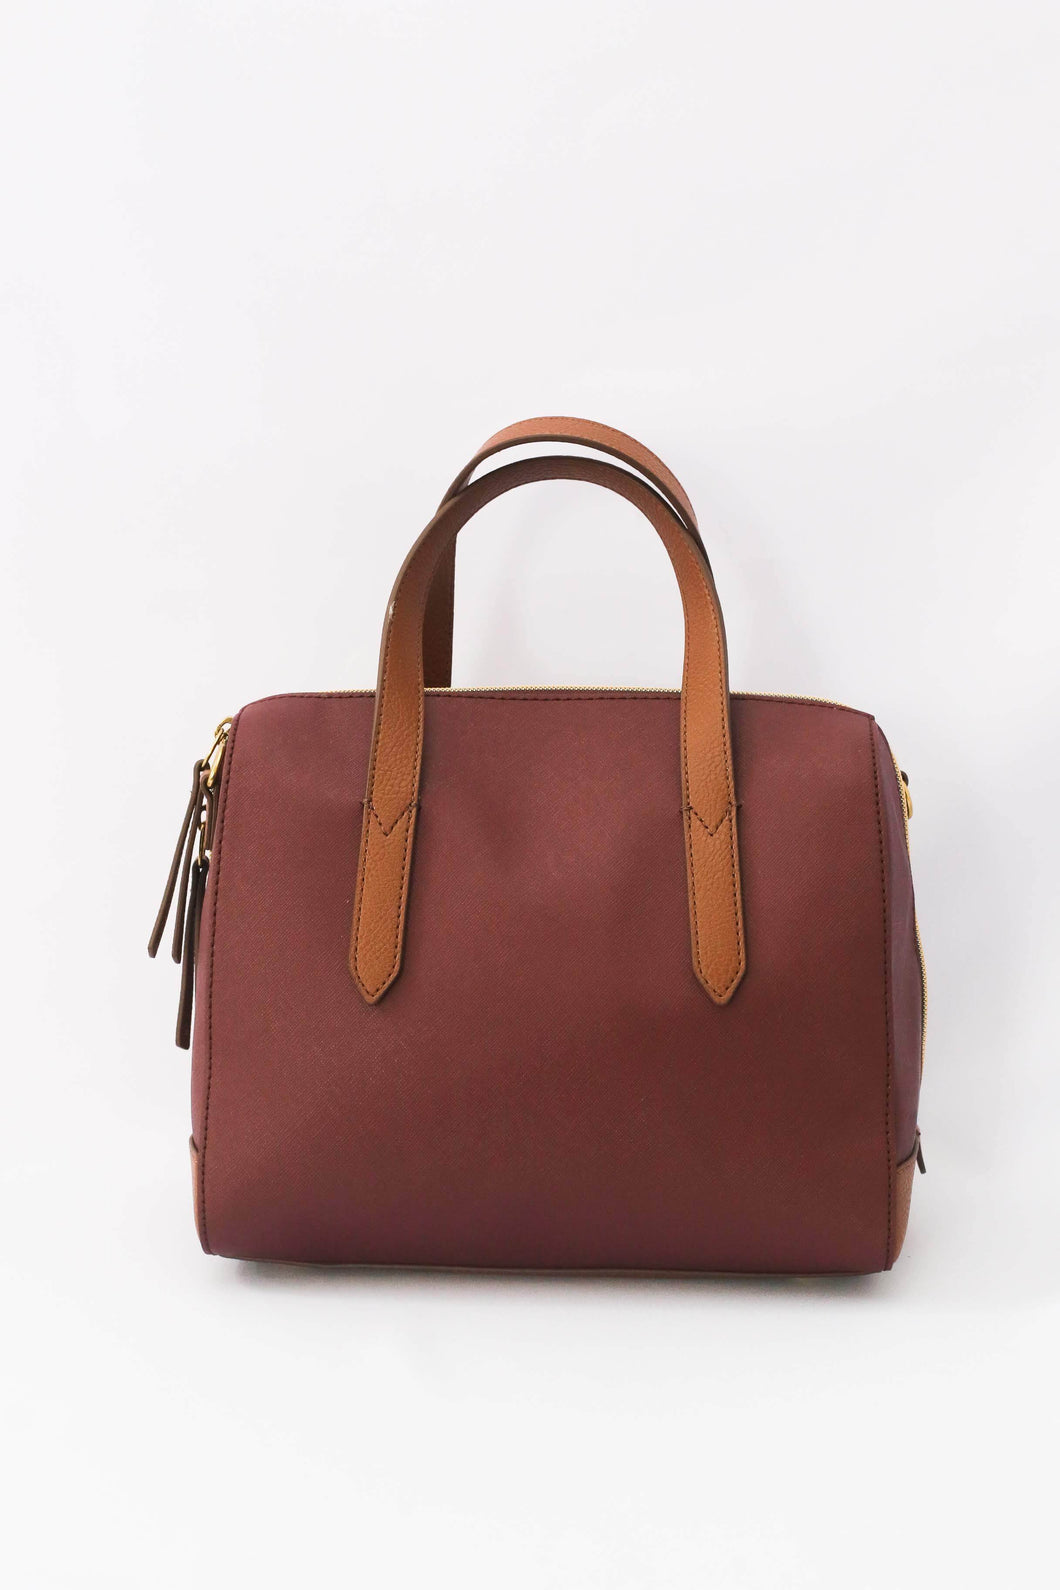 Fossil Sydney Satchel In Cabernet